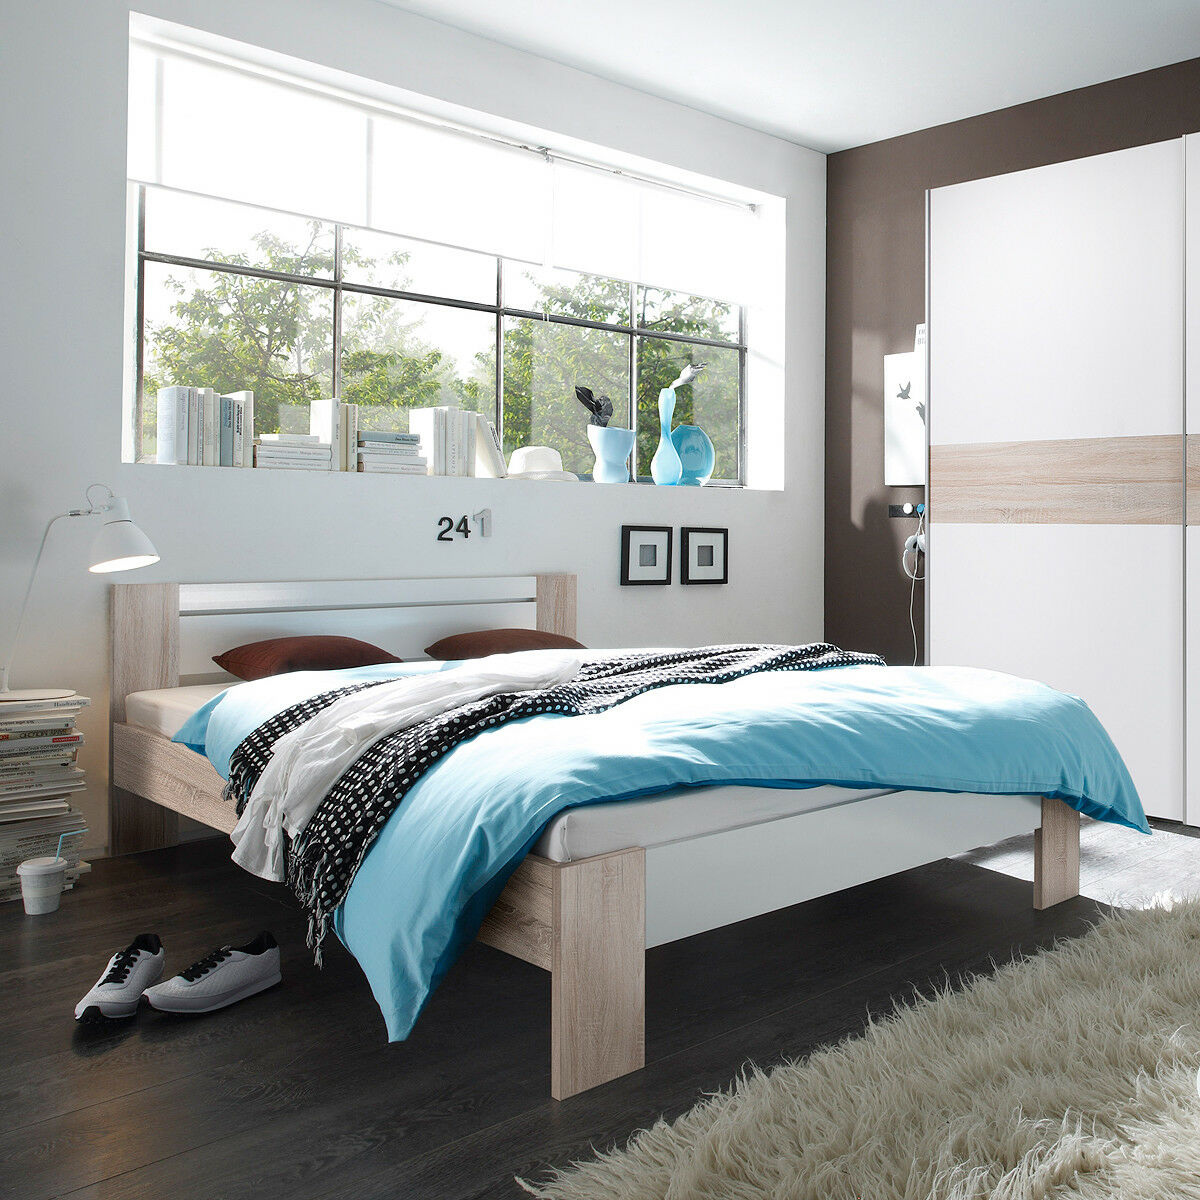 bett vega futonbett in sonoma eiche und wei mit rollrost und matratze 140x200 eur 149 95. Black Bedroom Furniture Sets. Home Design Ideas